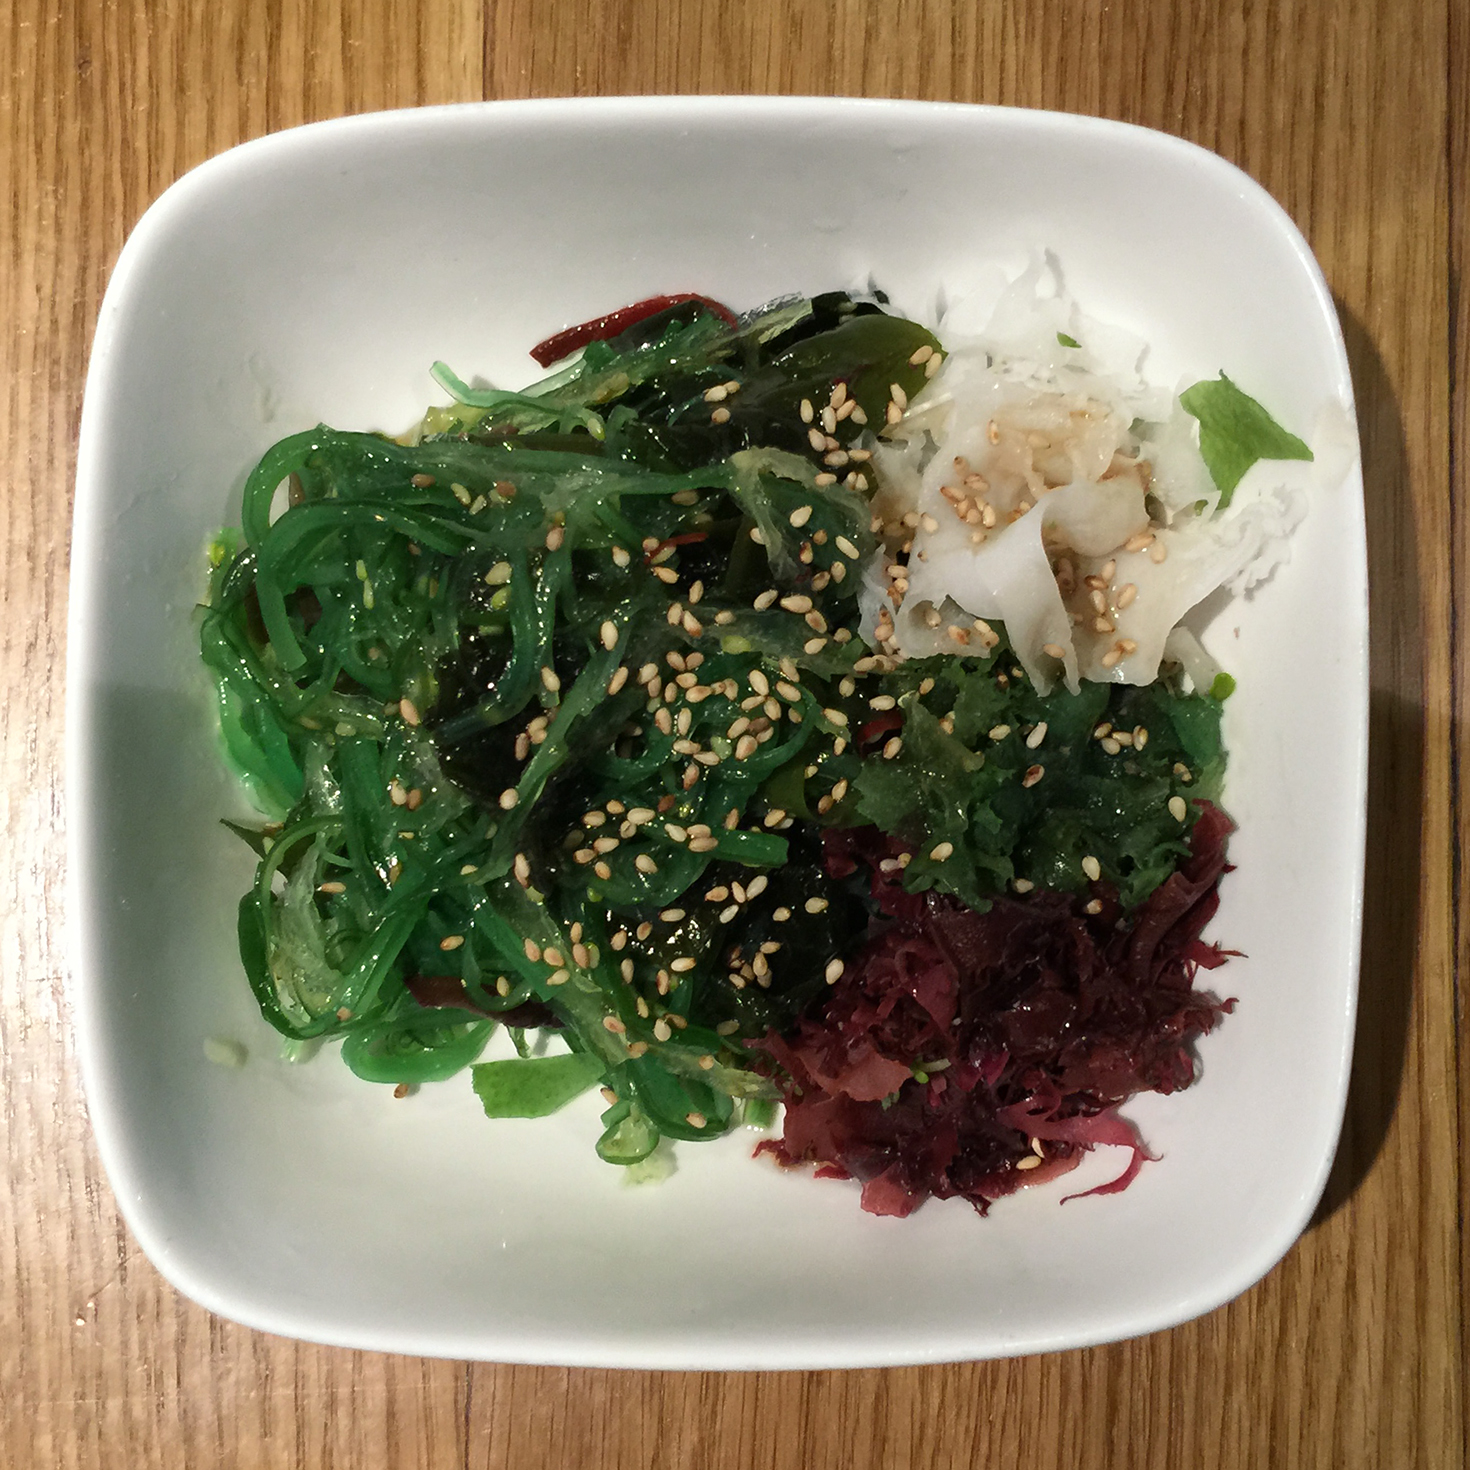 Seaweed salad at Totto Ramen | New York, New York